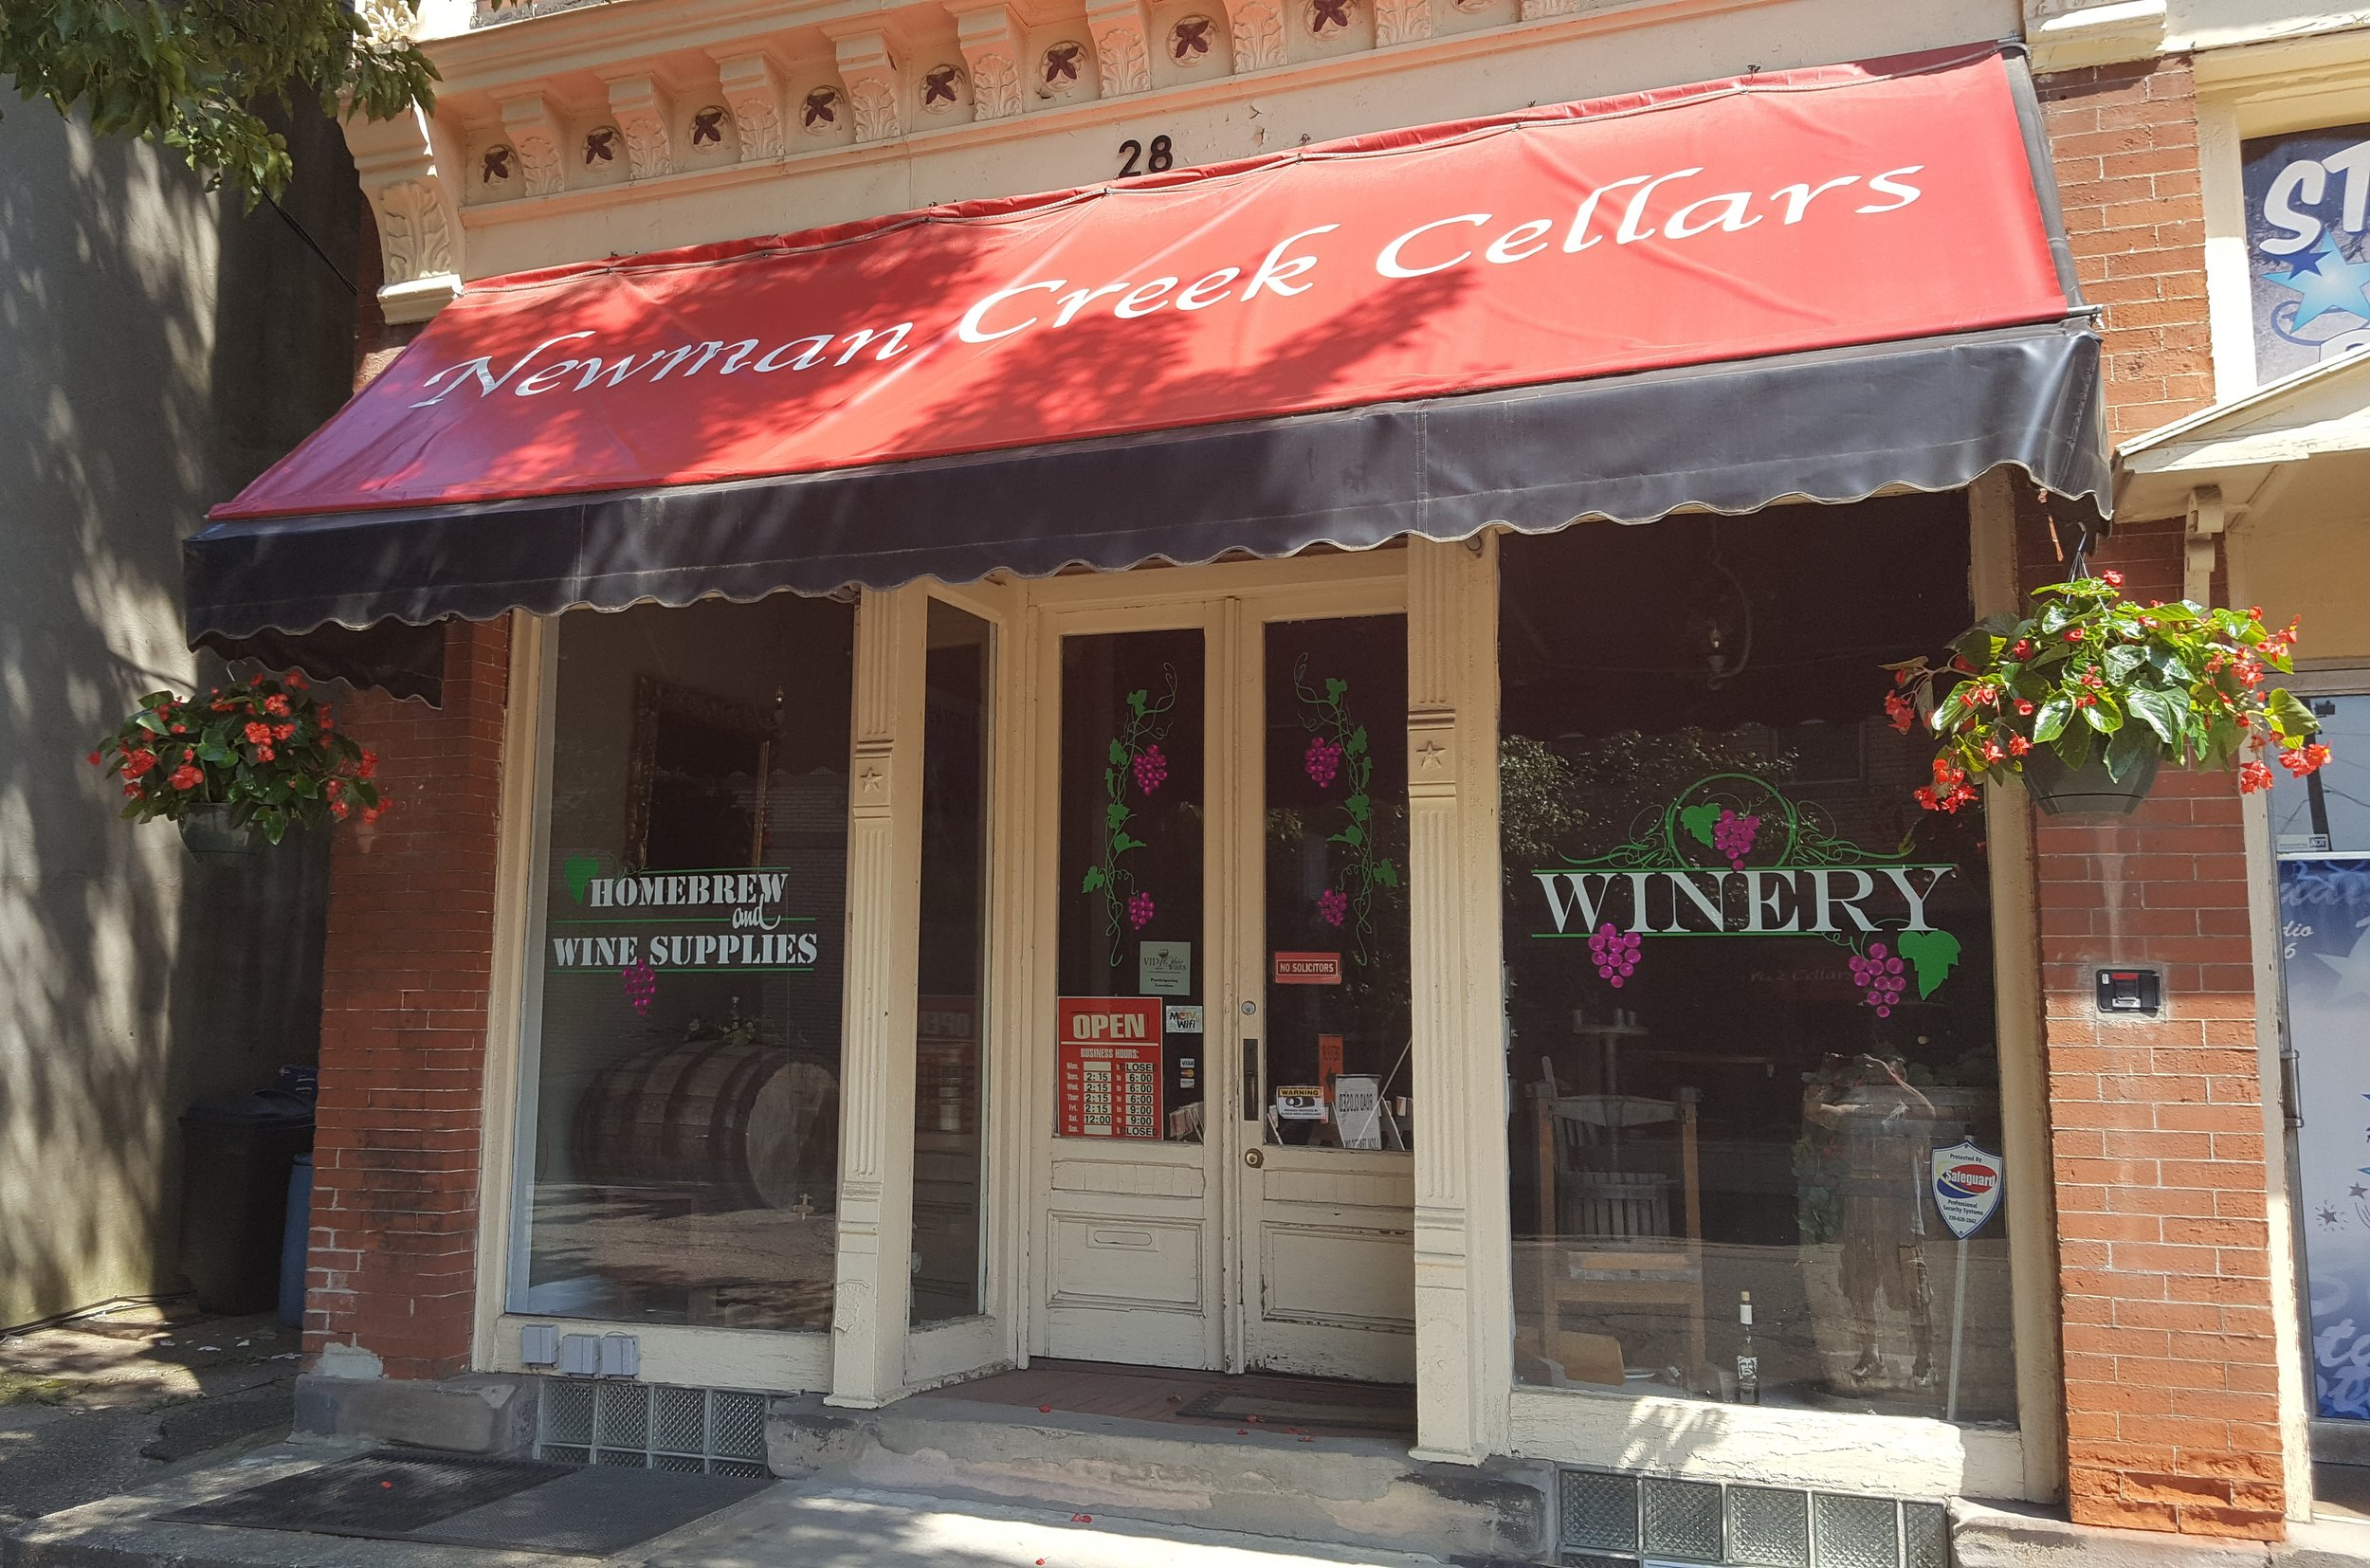 - 28 Charles Ave SE, Massillon, OH 44646Click for Map330-904-3546newmancreekcellars.comCanal Country Wine TrailStark County